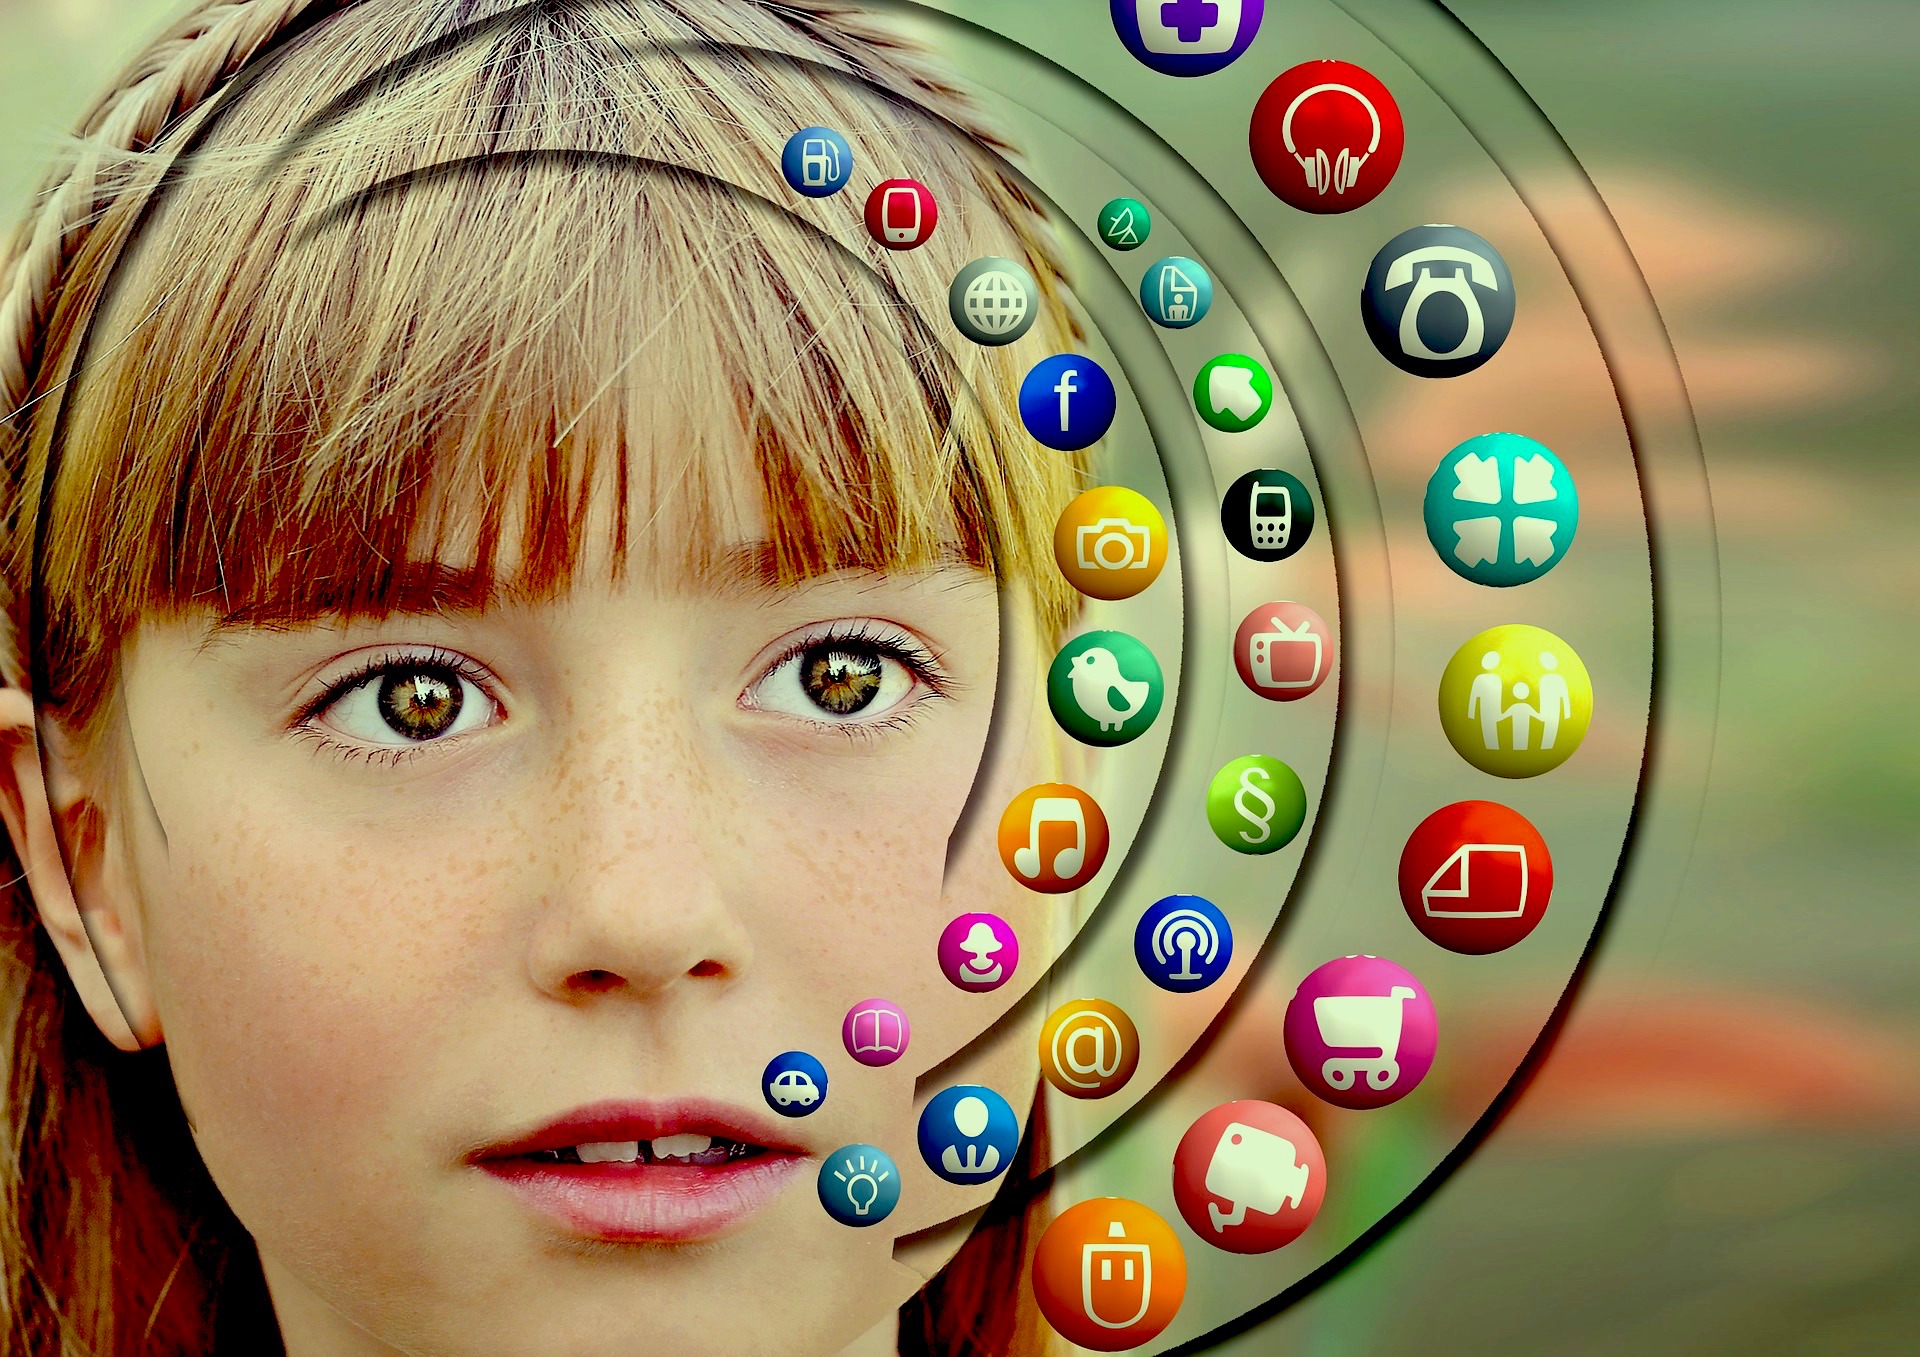 kid surrounded by social media icons